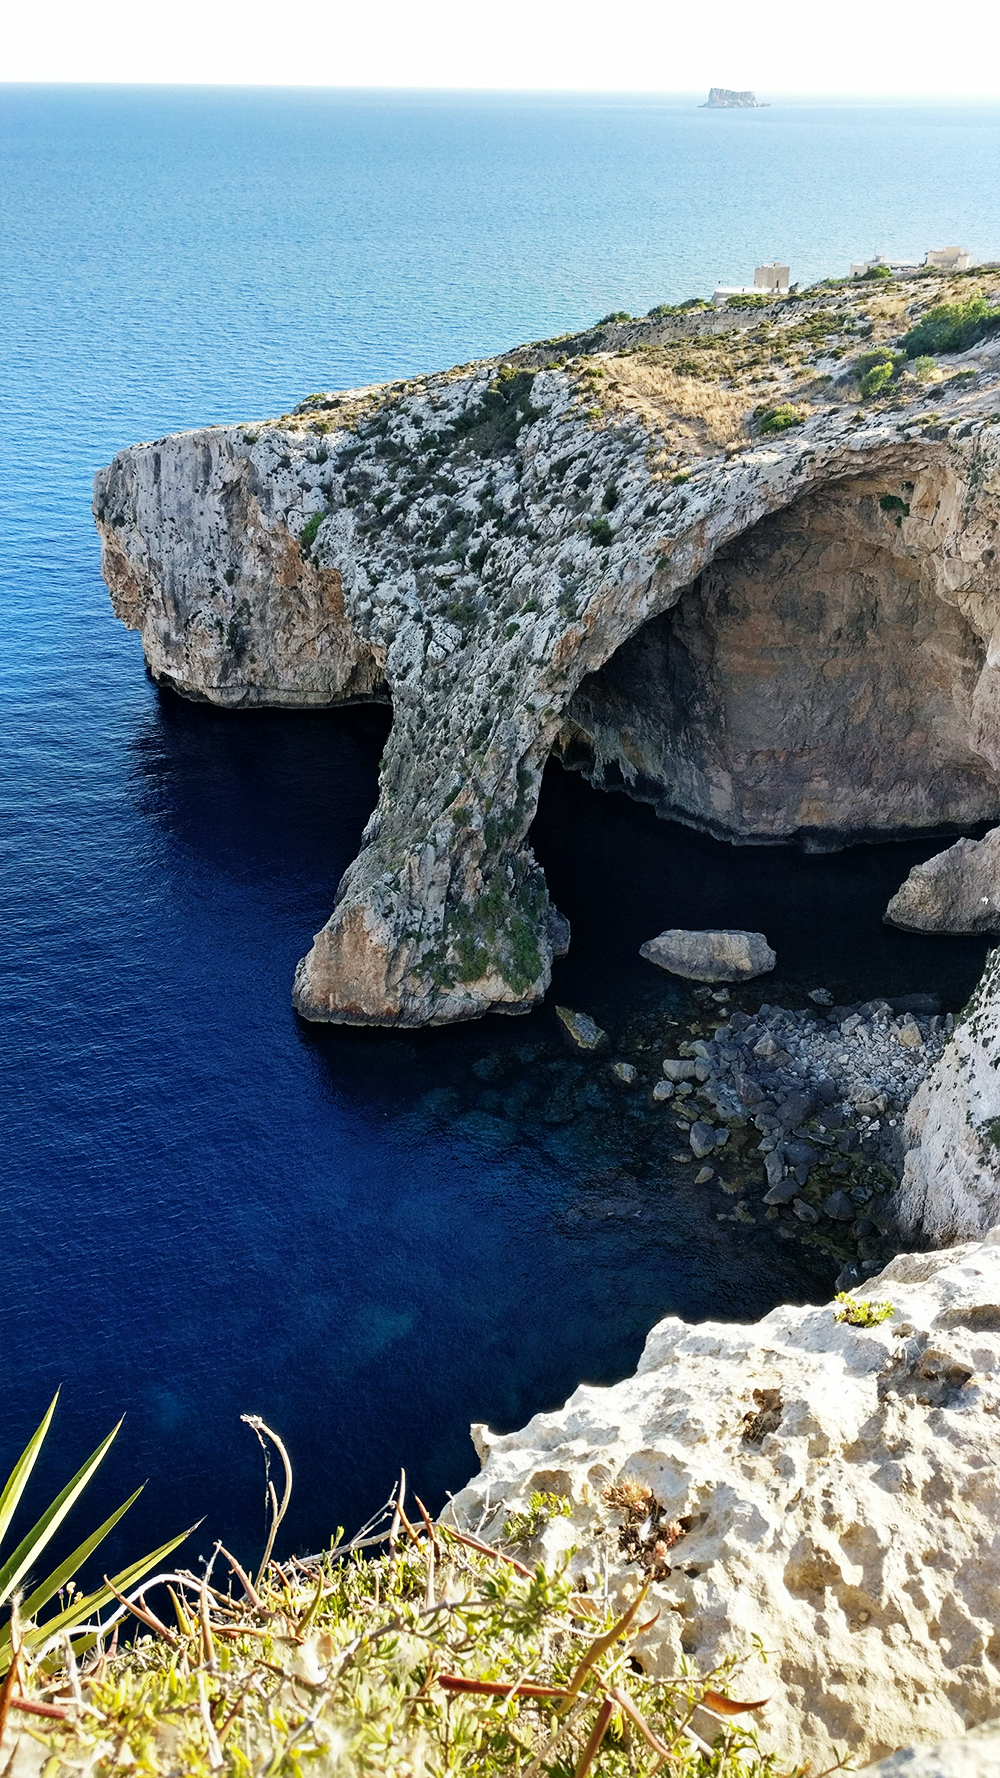 Blue Grotto Panorama - Day 1 in Malta - Blue Grotto, Hagar Qim and Mnajdra Temples